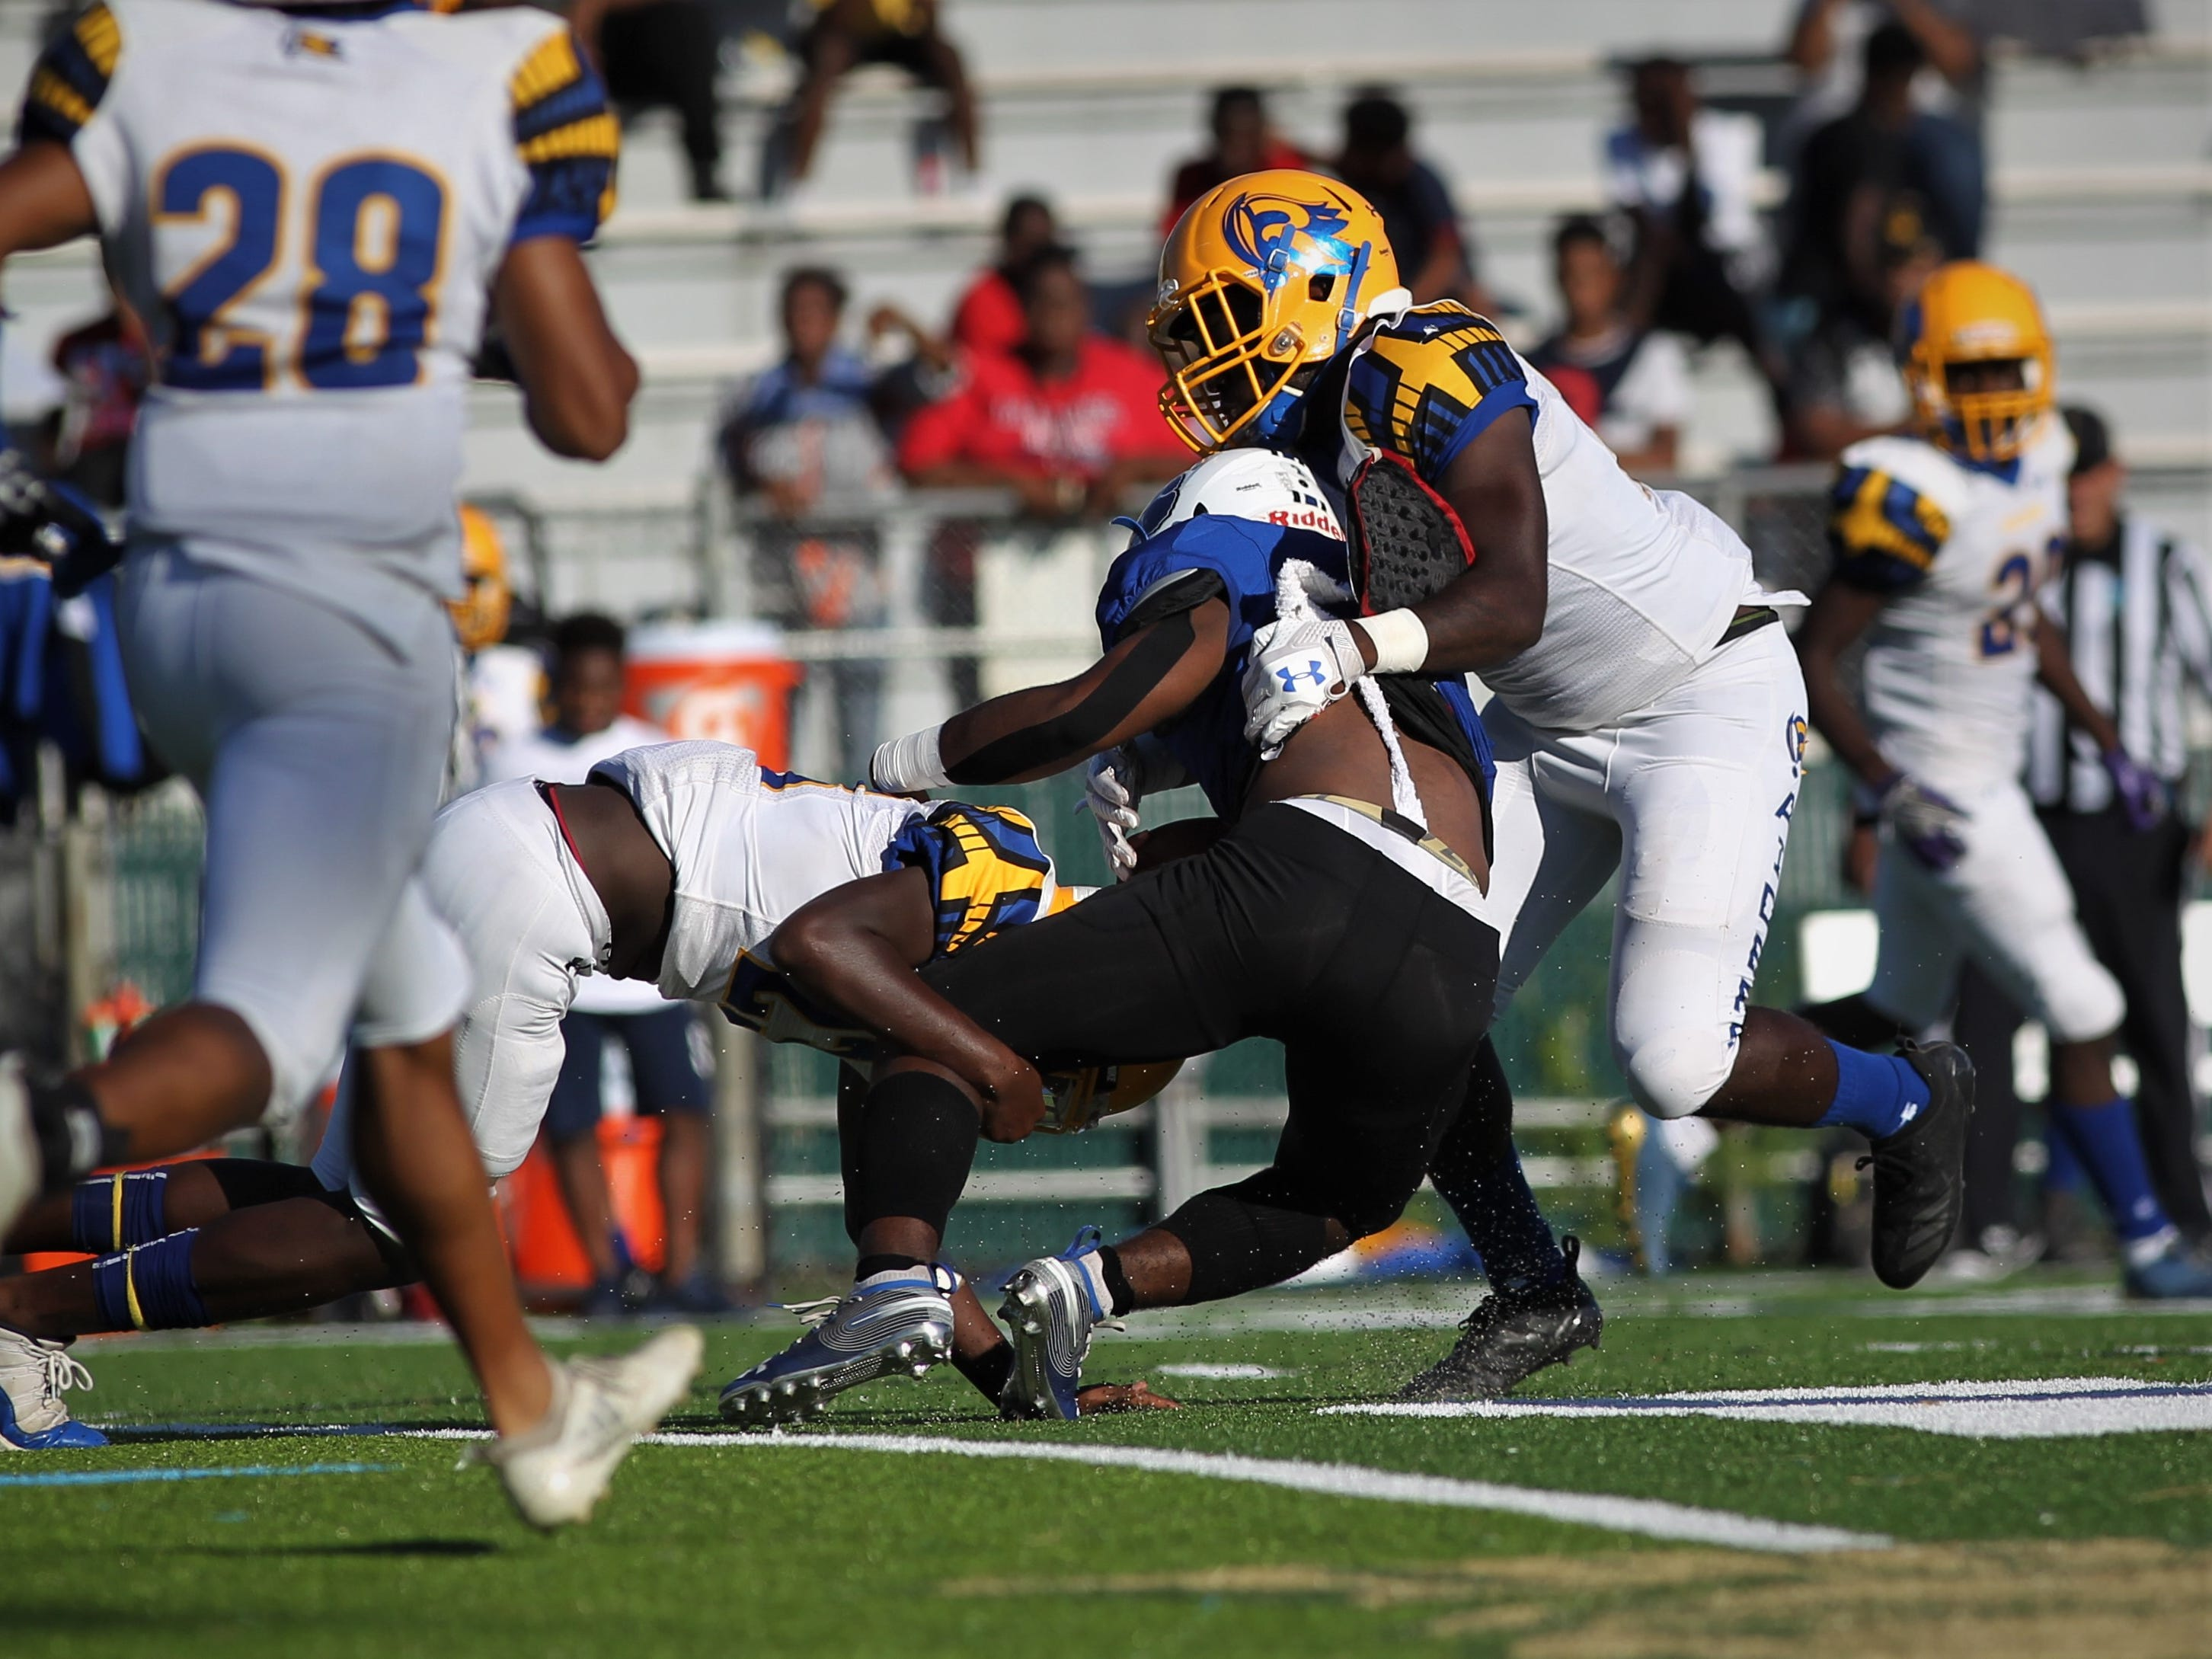 The Godby Cougars face the Rickards Raiders in a high school football game at Gene Cox Stadium on Saturday, Oct. 13, 2018.